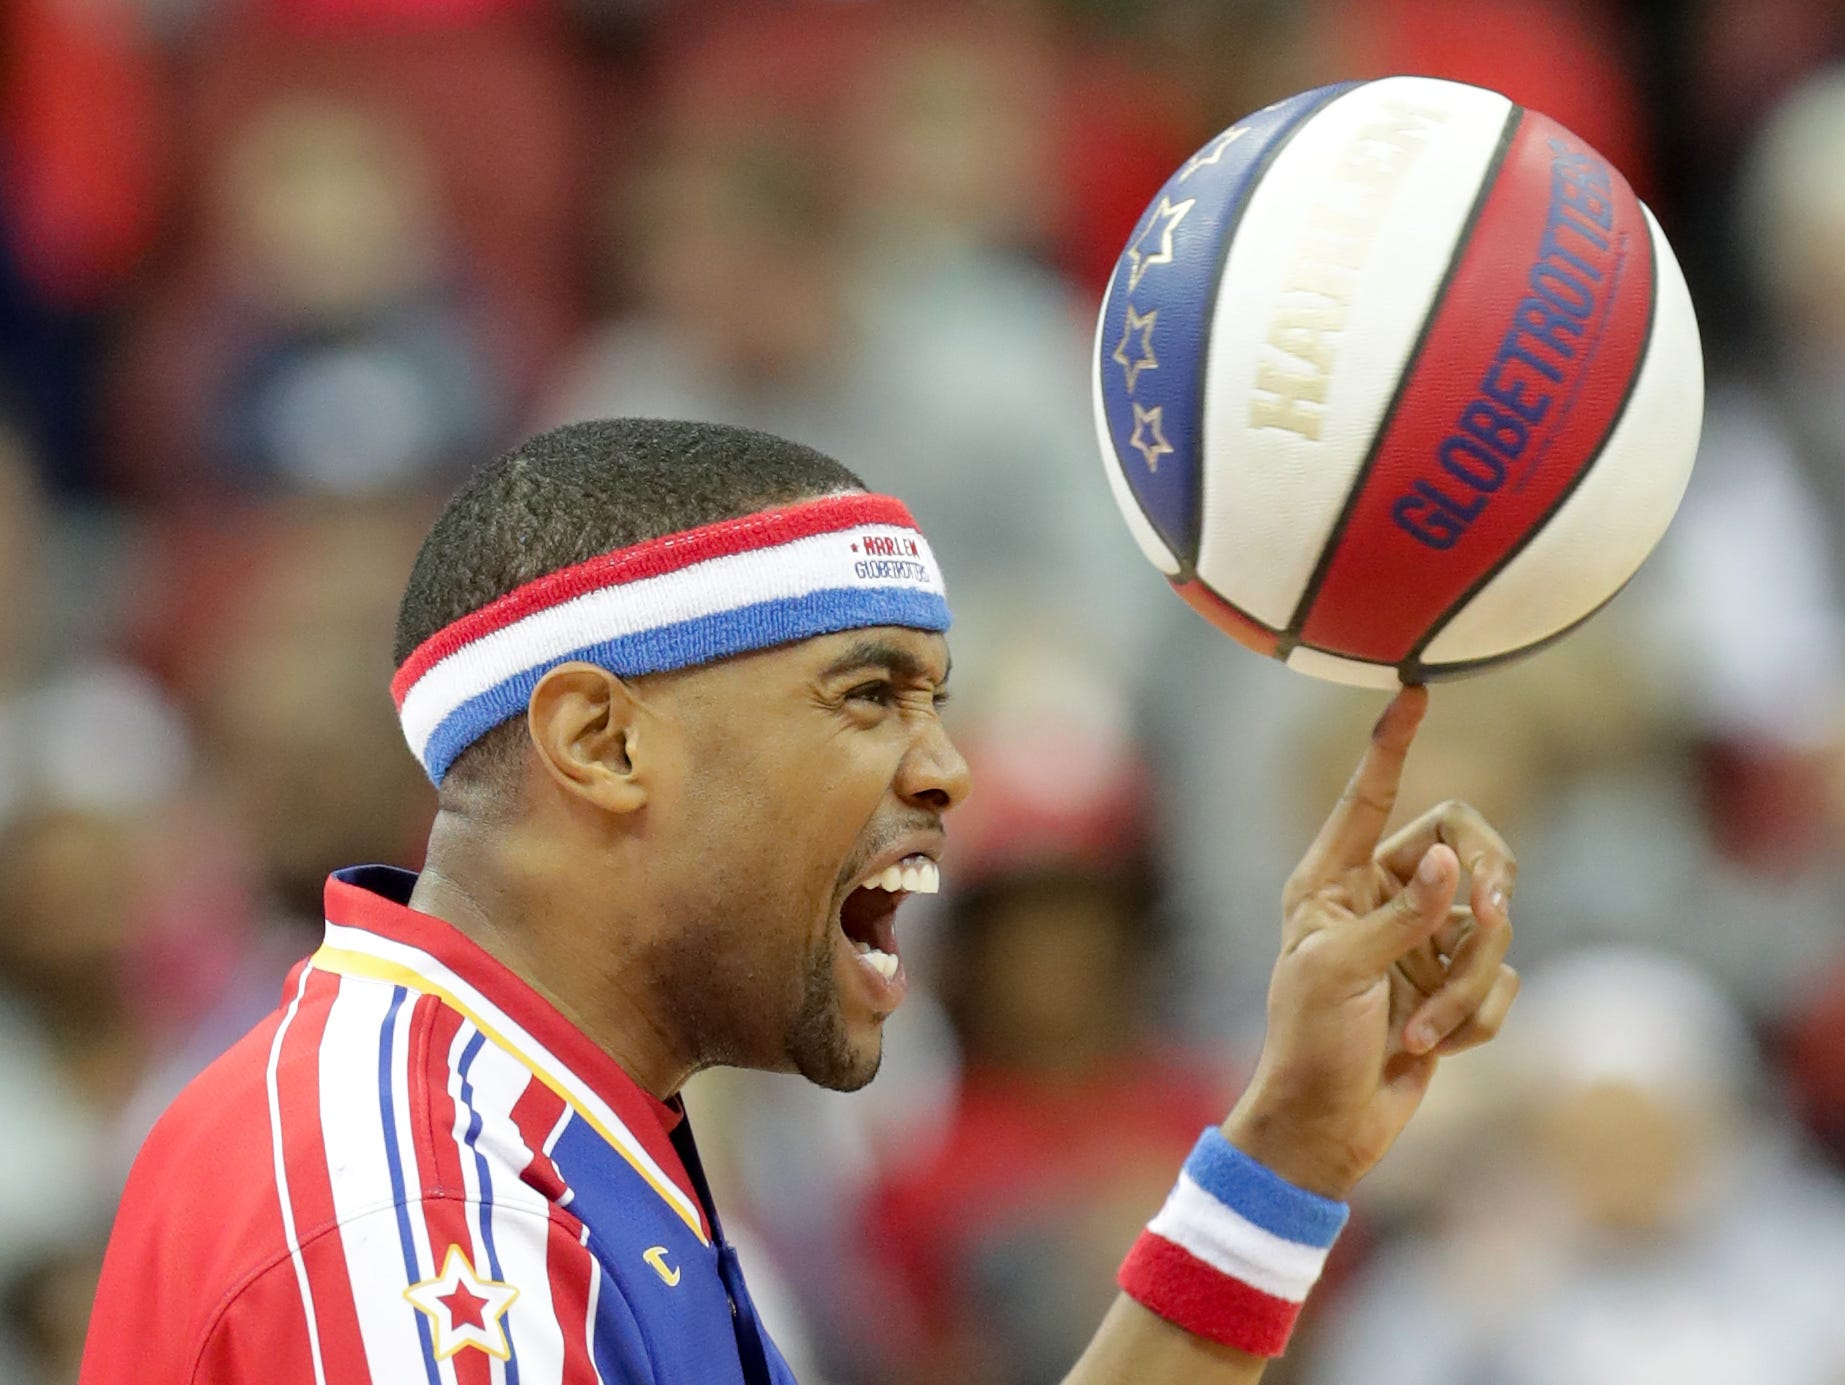 Harlem Globetrotters' Cheese entertains the crowd with his ball control before the game.